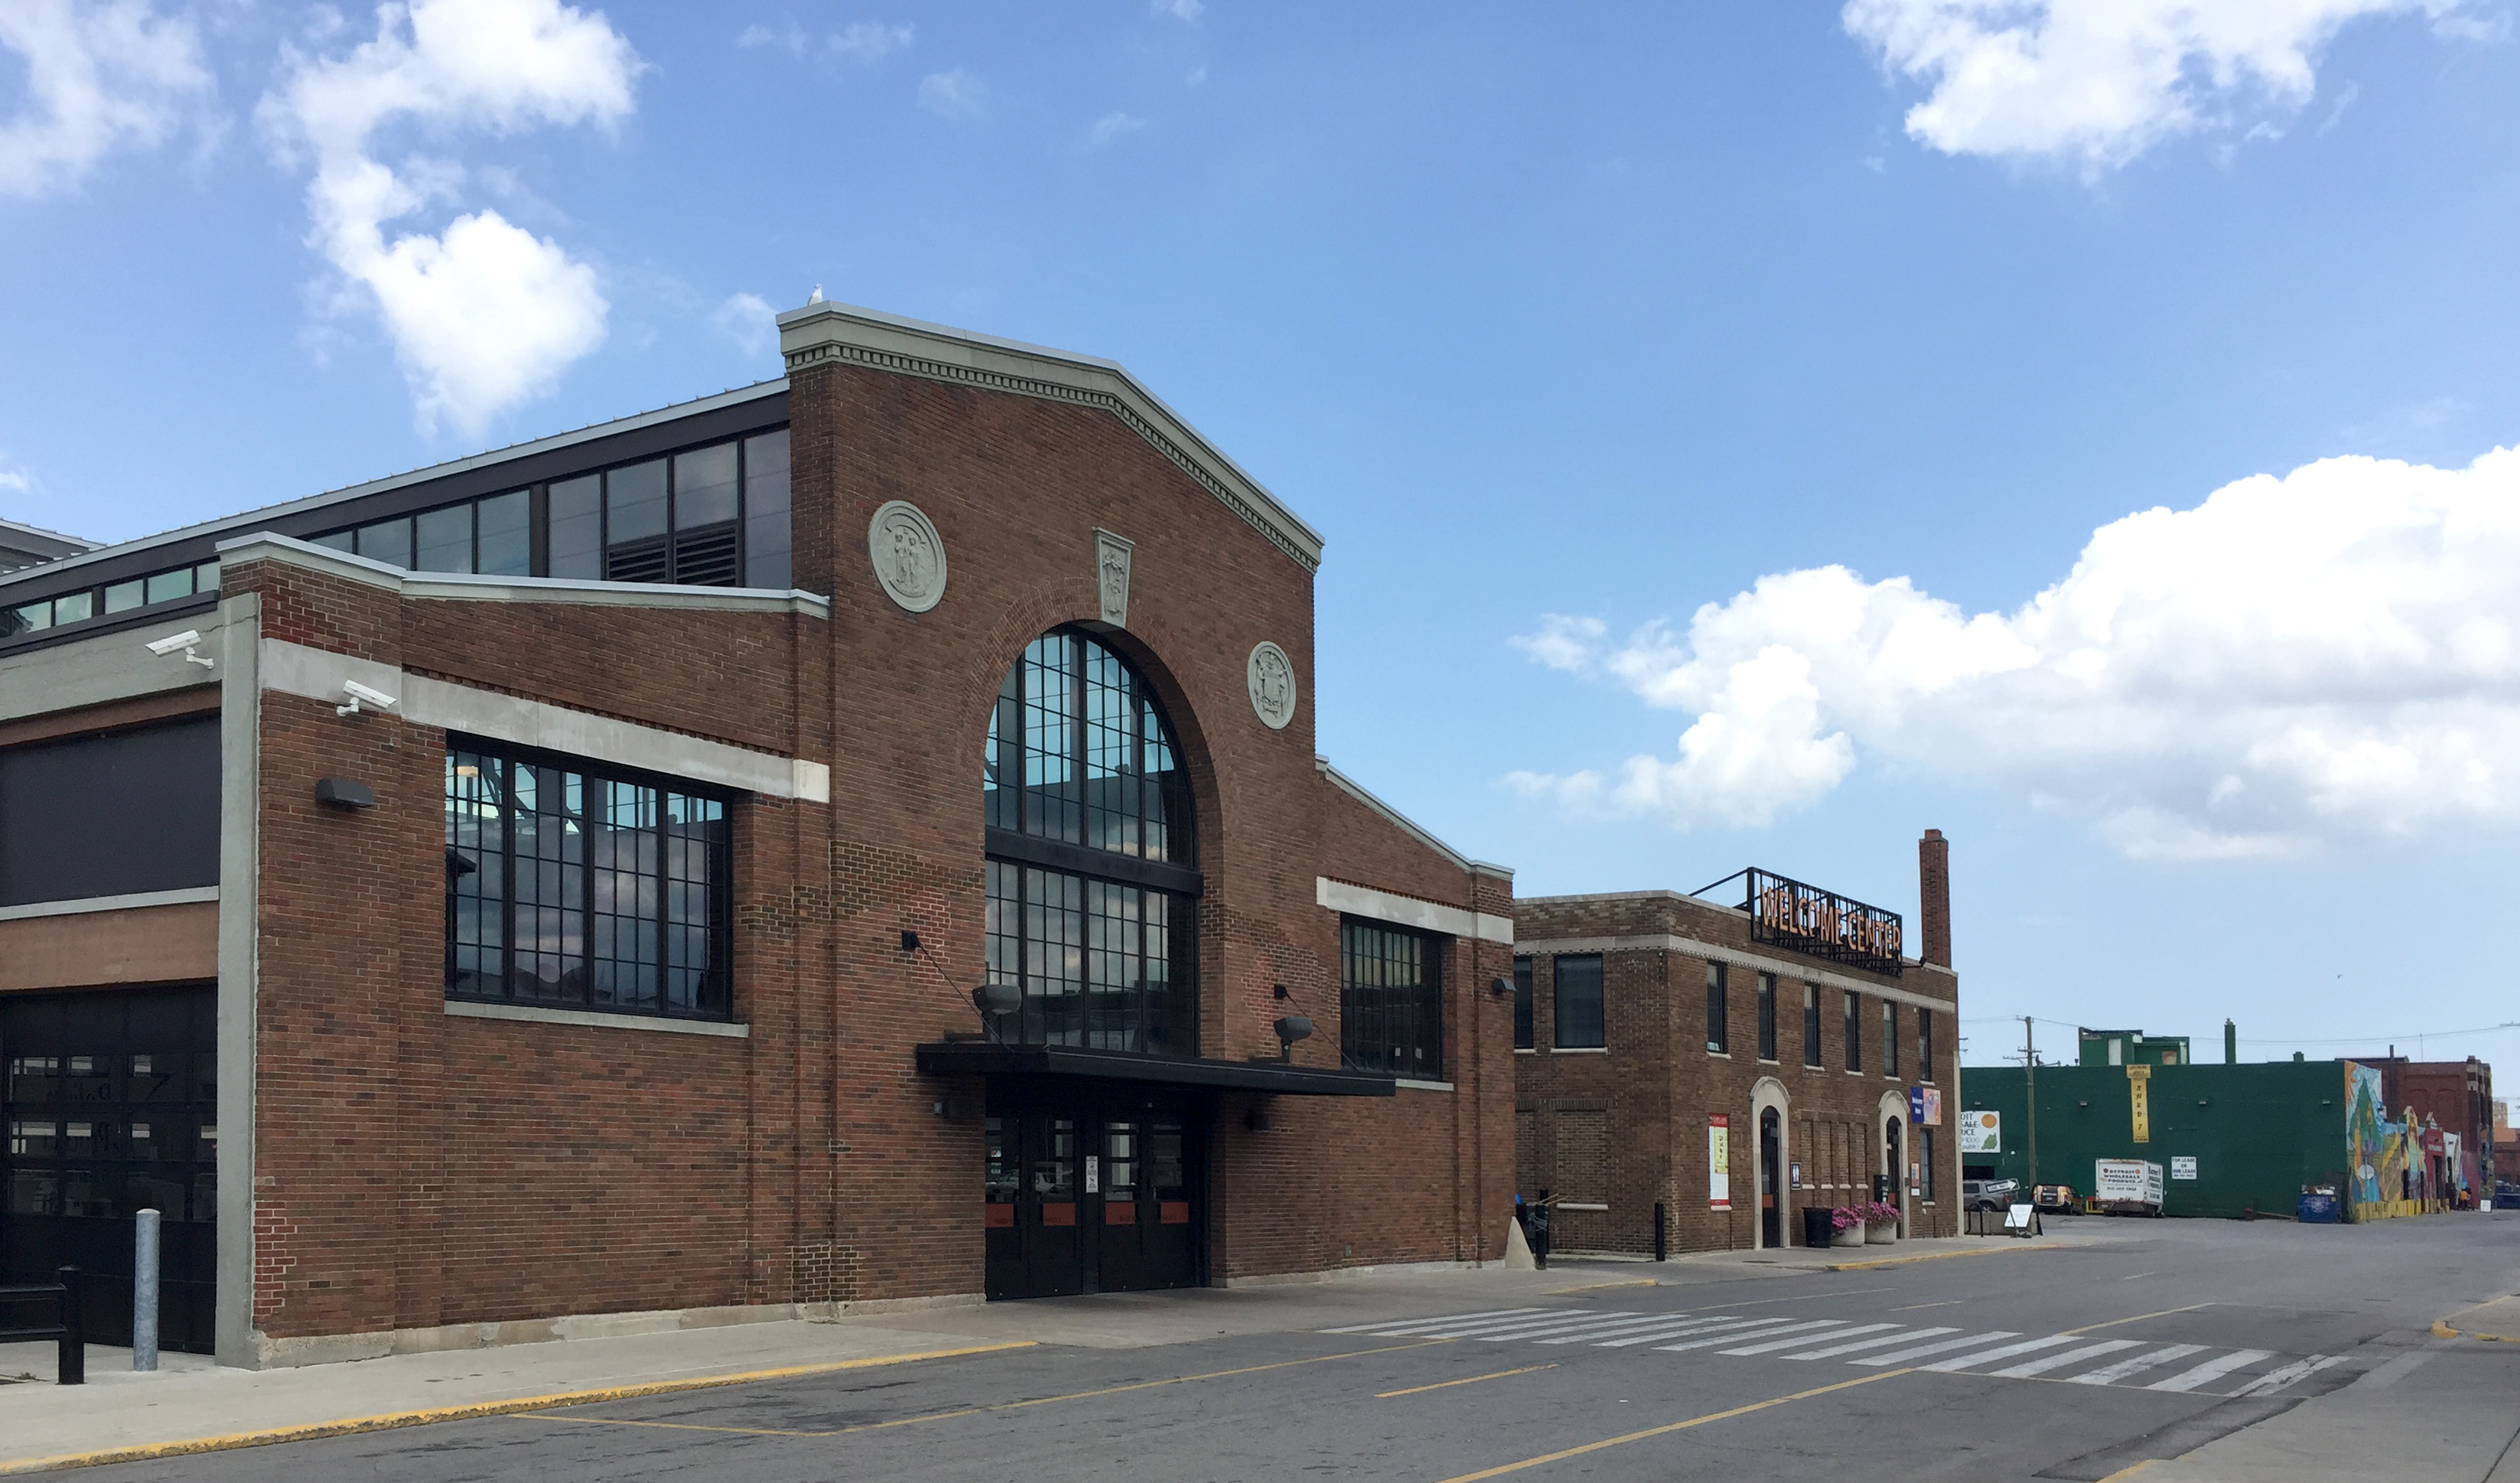 Tim Love discusses visions for Detroit's Eastern Market in The Architect's Newspaper